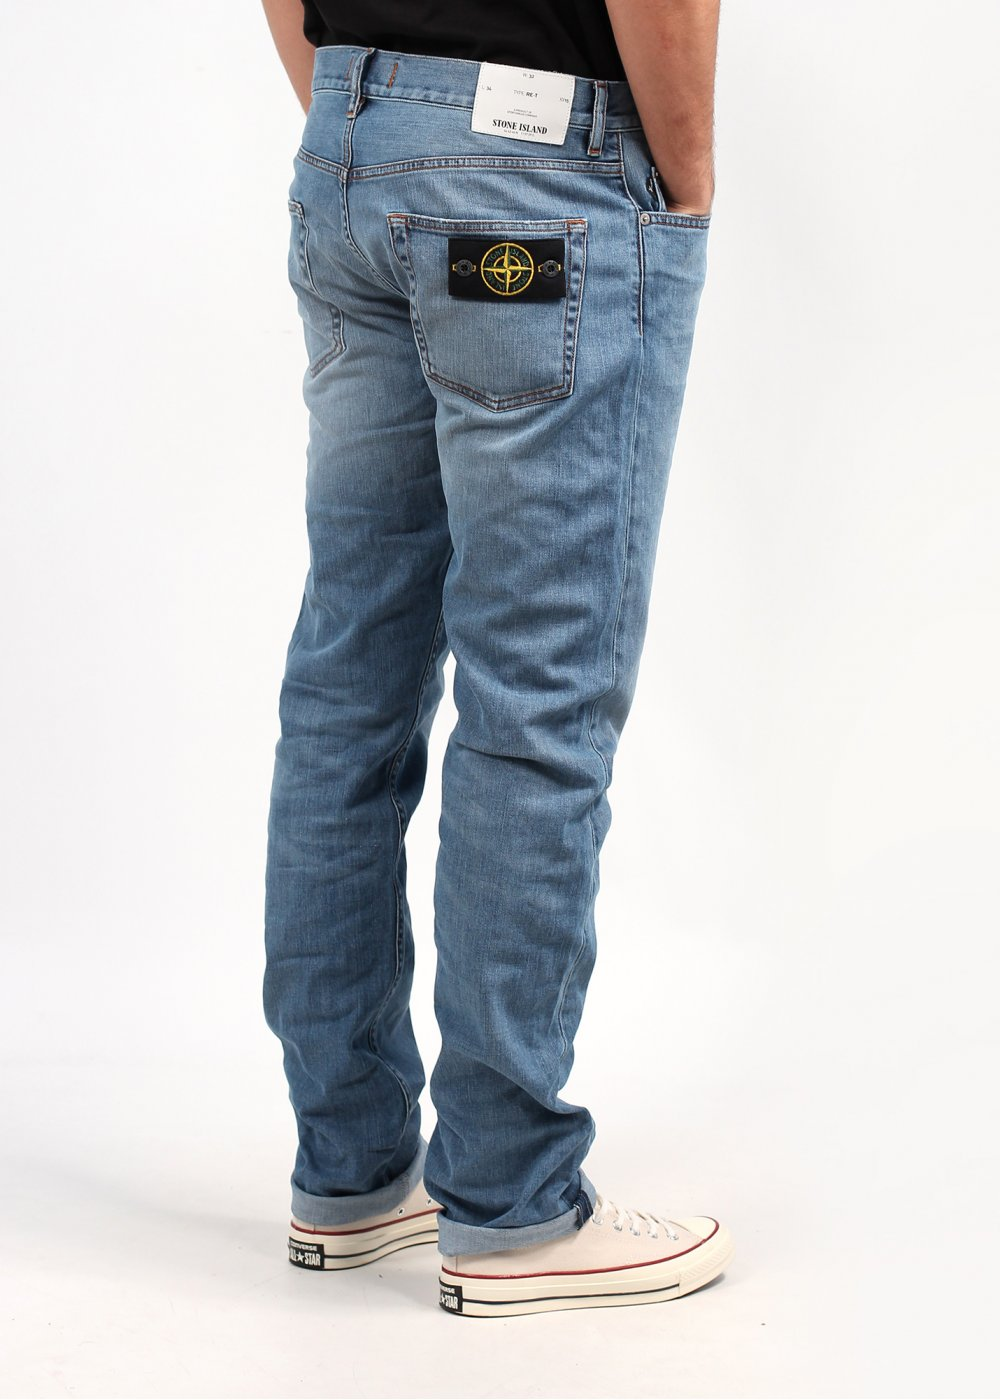 Stone Island Light Blue Jeans Sale